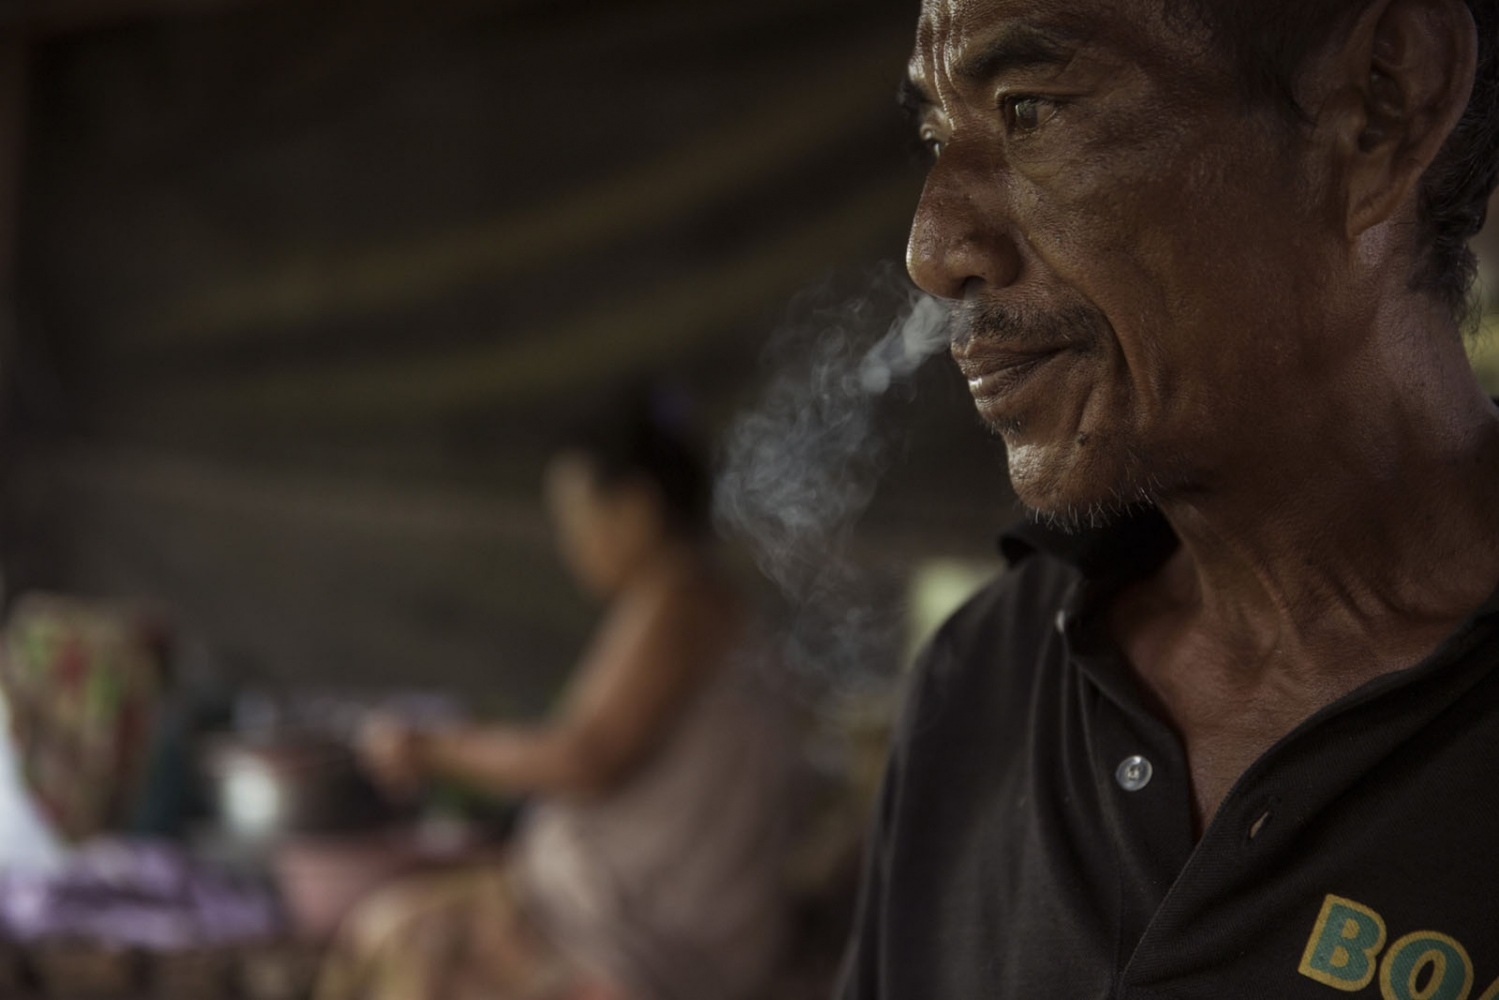 Sukon Dongwun, 54, smokes a cigarette in a neighbours house.